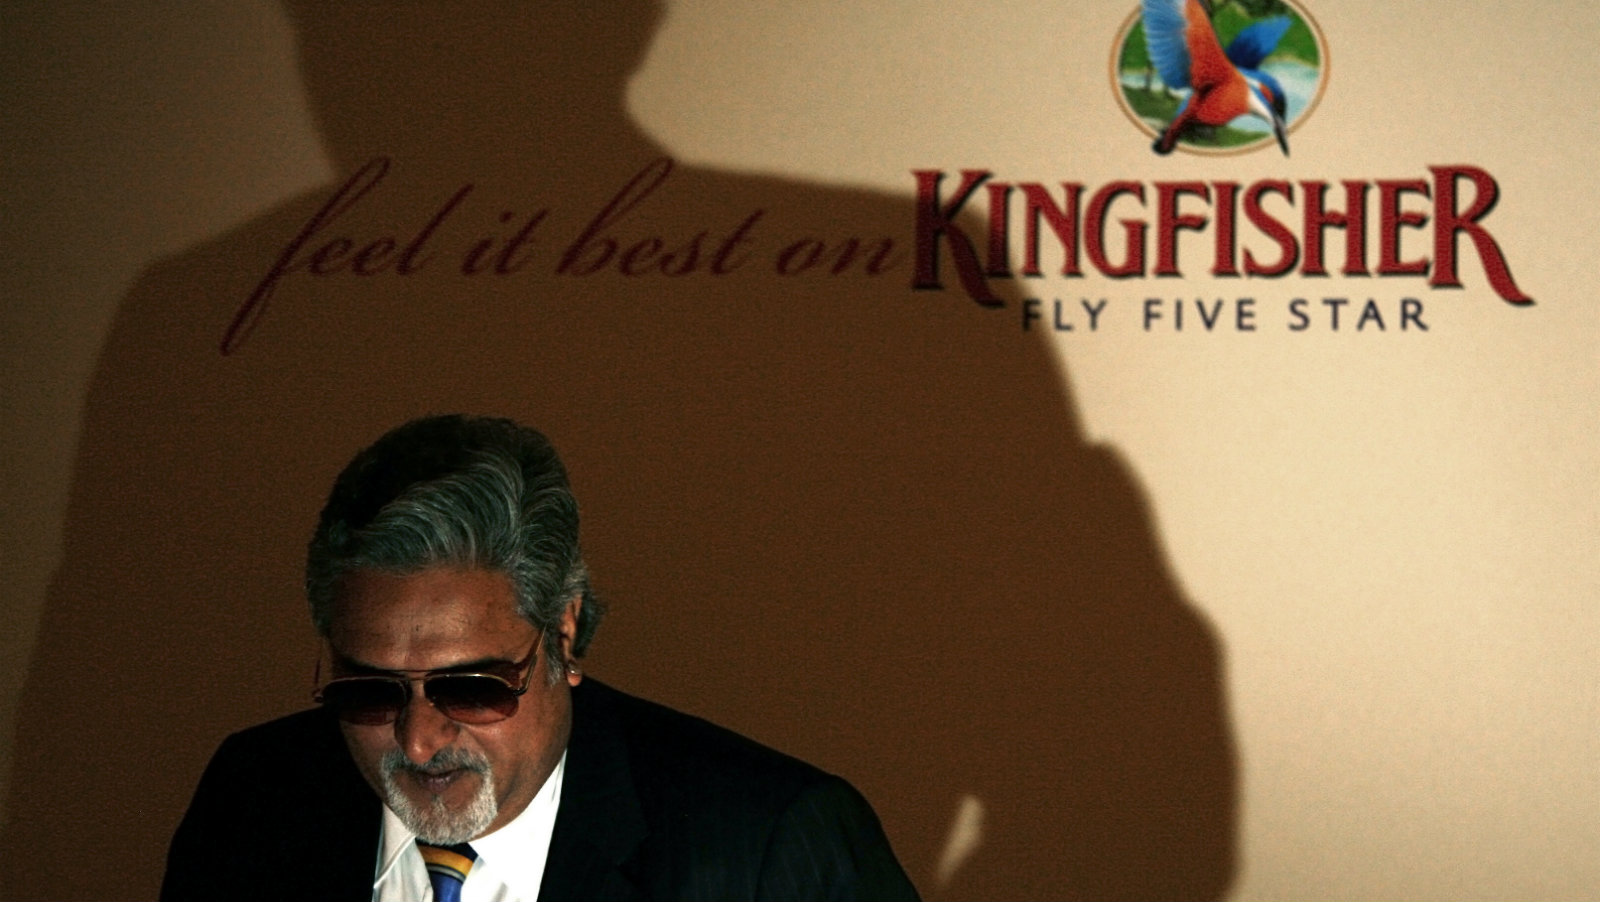 Kingfisher Airlines Chairman Vijay Mallya leaves after a news conference about the new Kingfisher Airlines service between London and Bangalore in southern India, in London September 4, 2008.